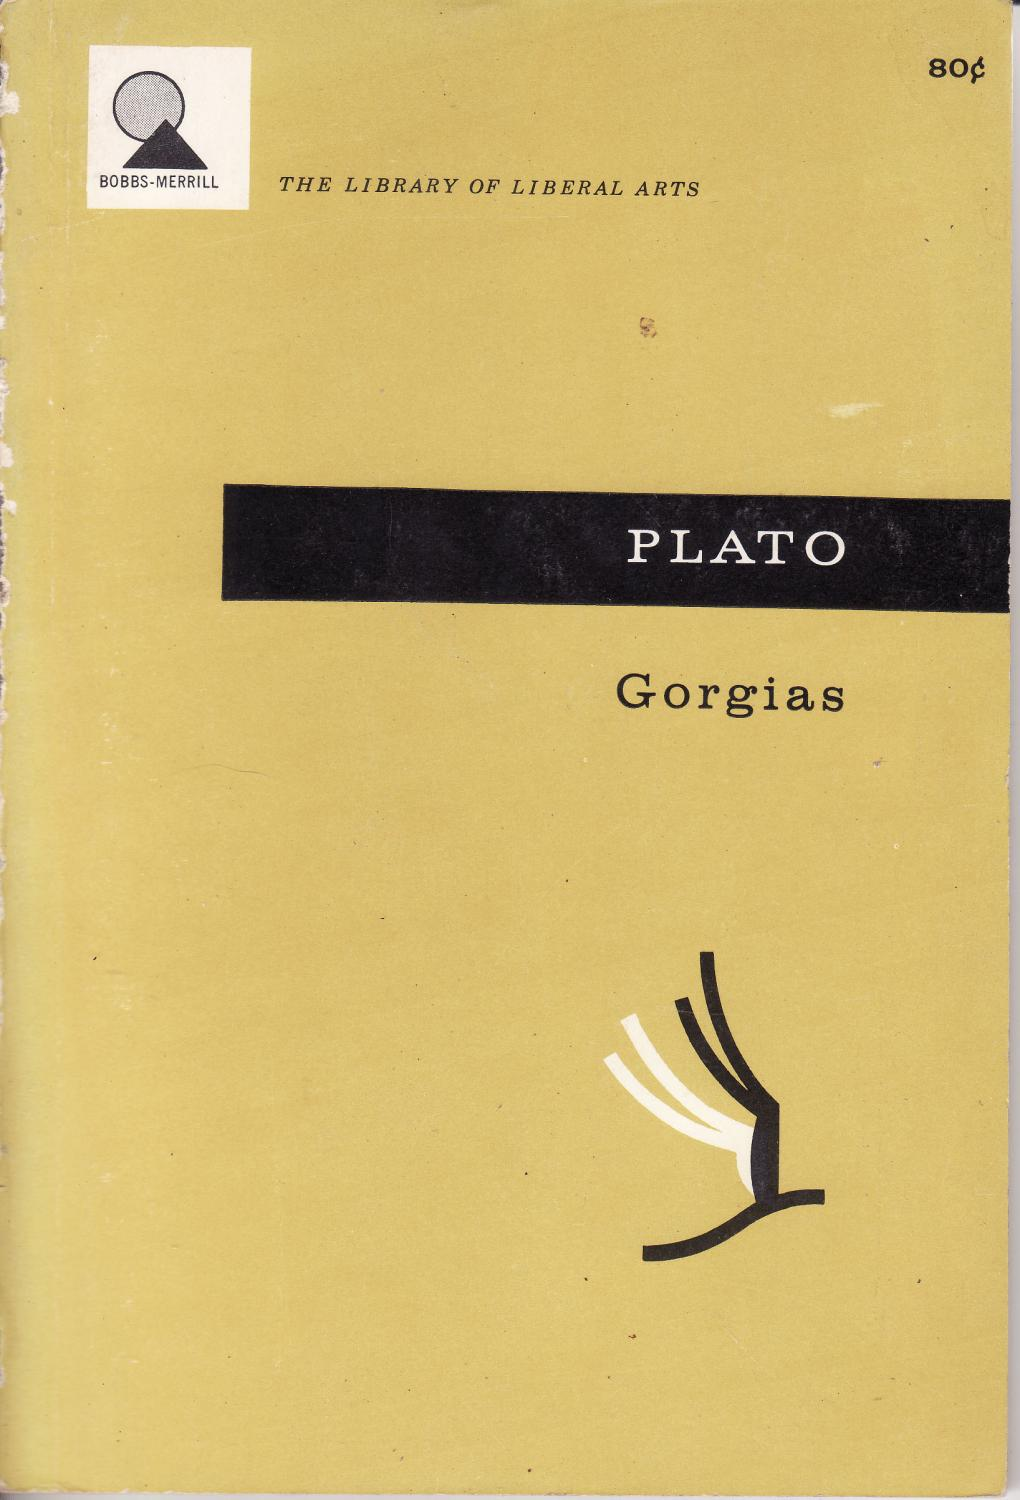 Gorgias [Library of Liberal Arts], Plato, translated by W.C. Helmbold